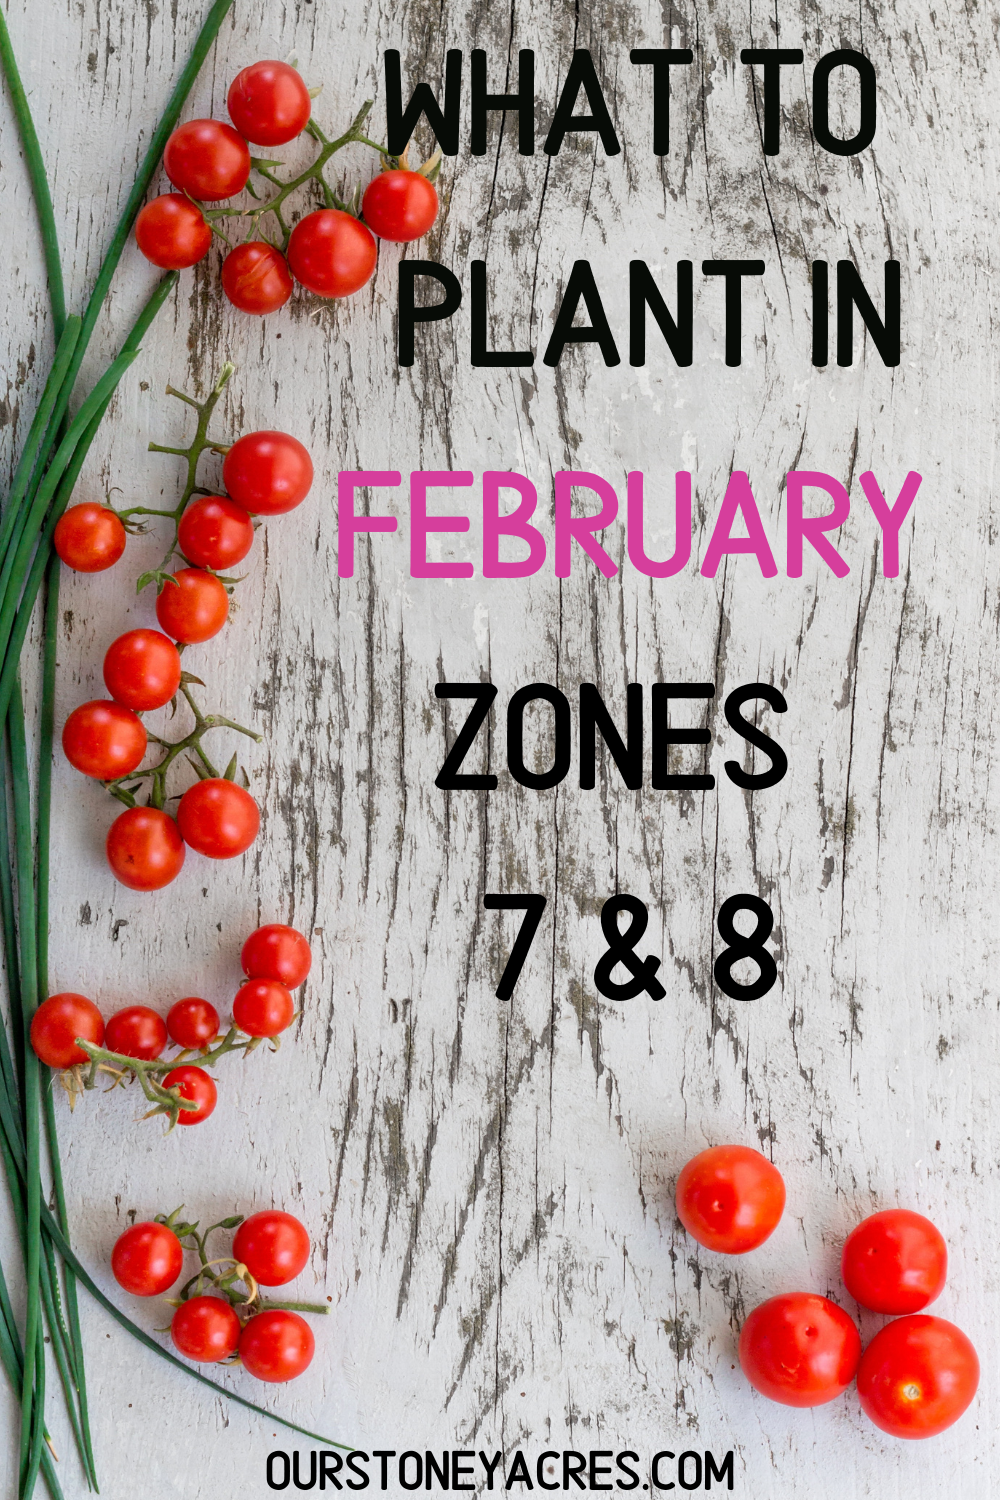 What to plant in February Zones 7 &8